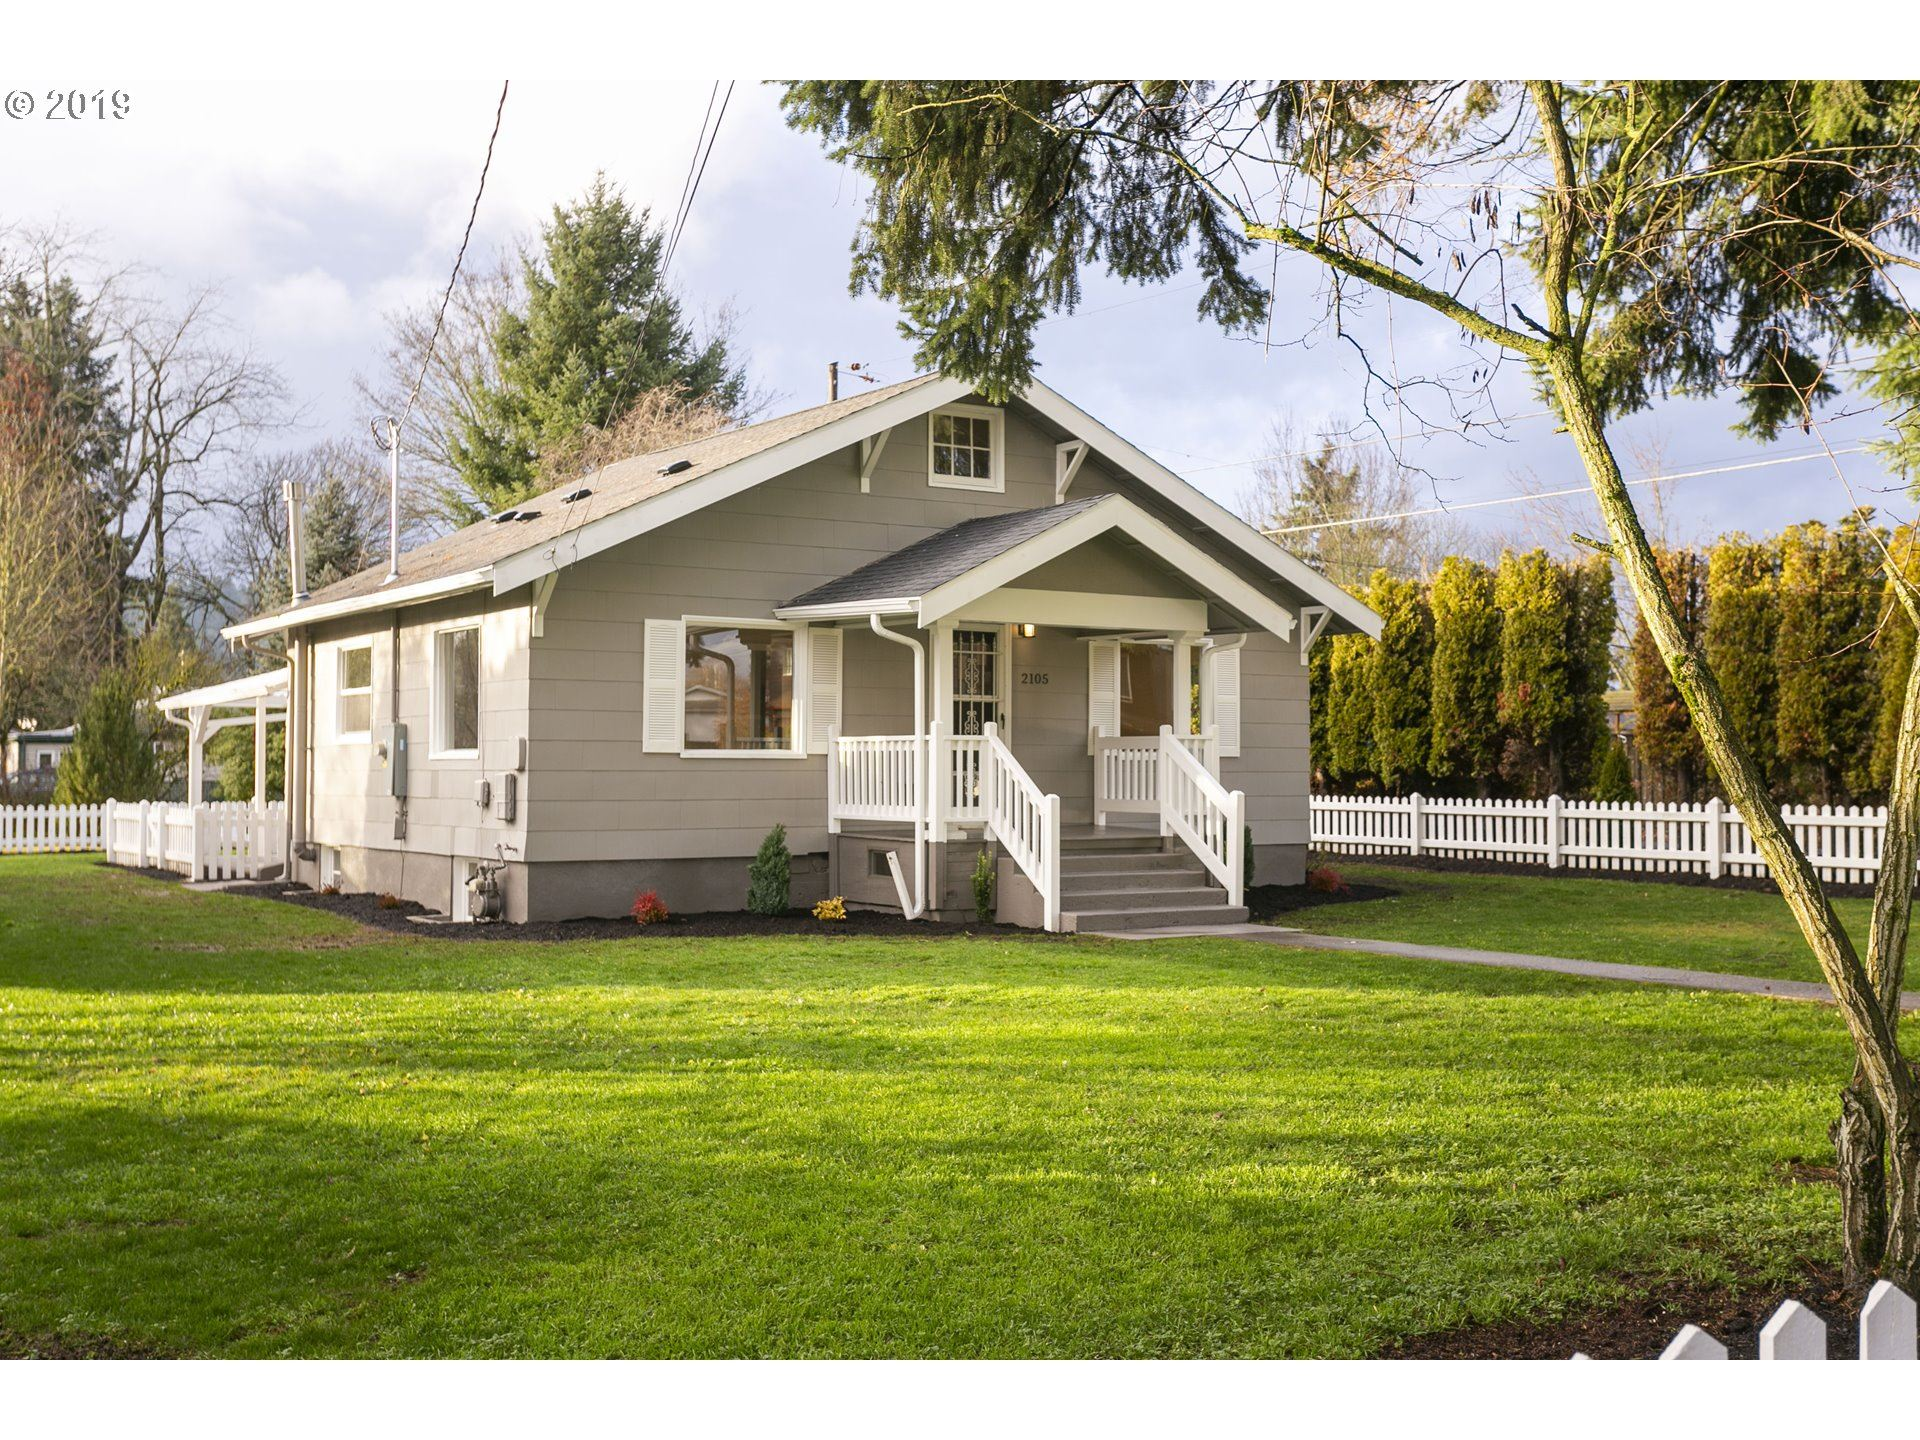 2105 SE 89TH AVE, Portland, OR 97216 - MLS#: 19526585